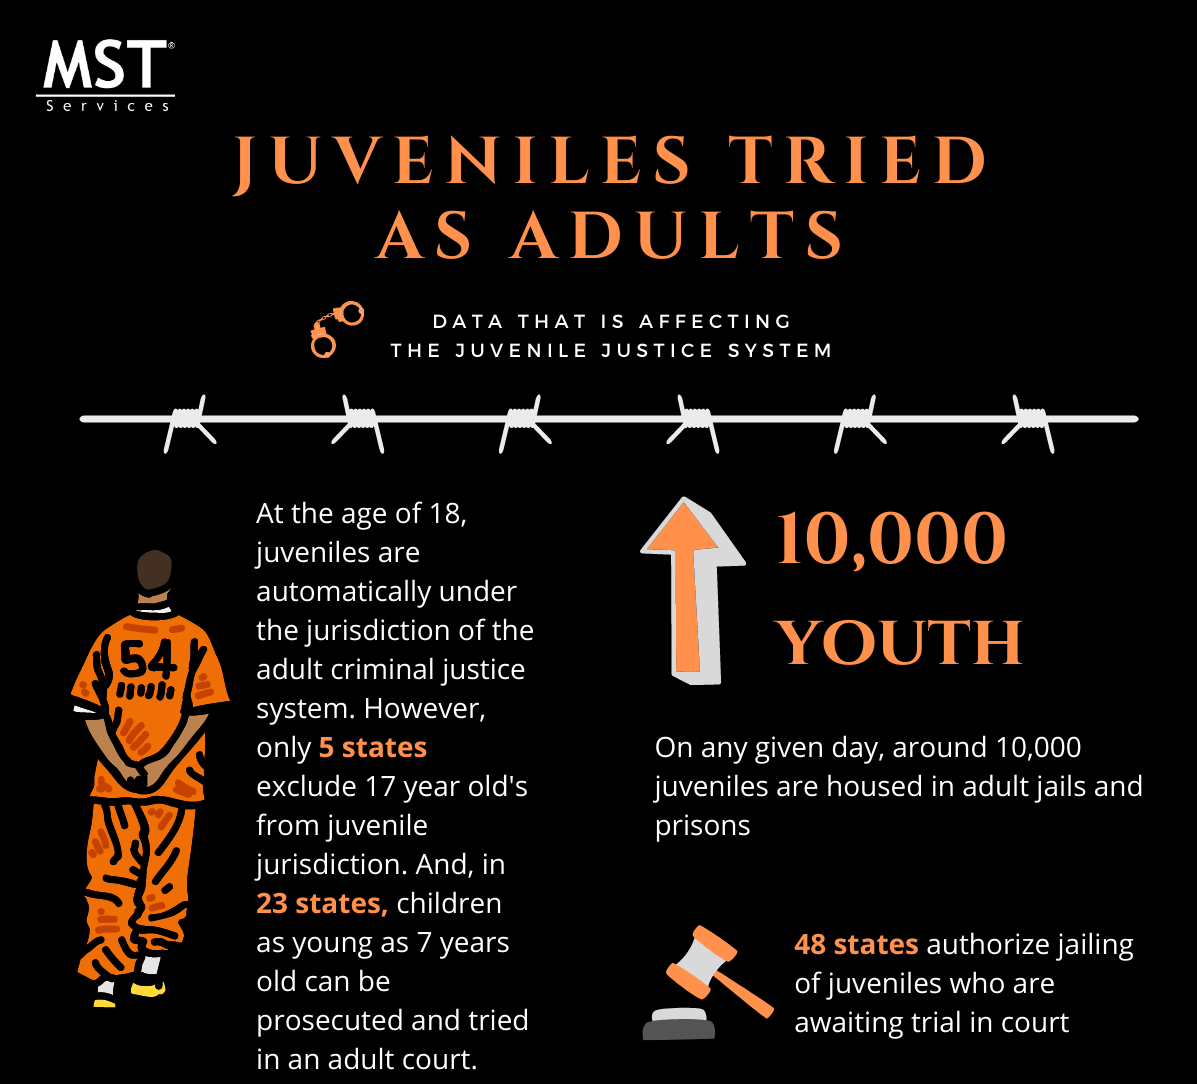 Juveniles Tried as Adults Infographic - MST thumbnail